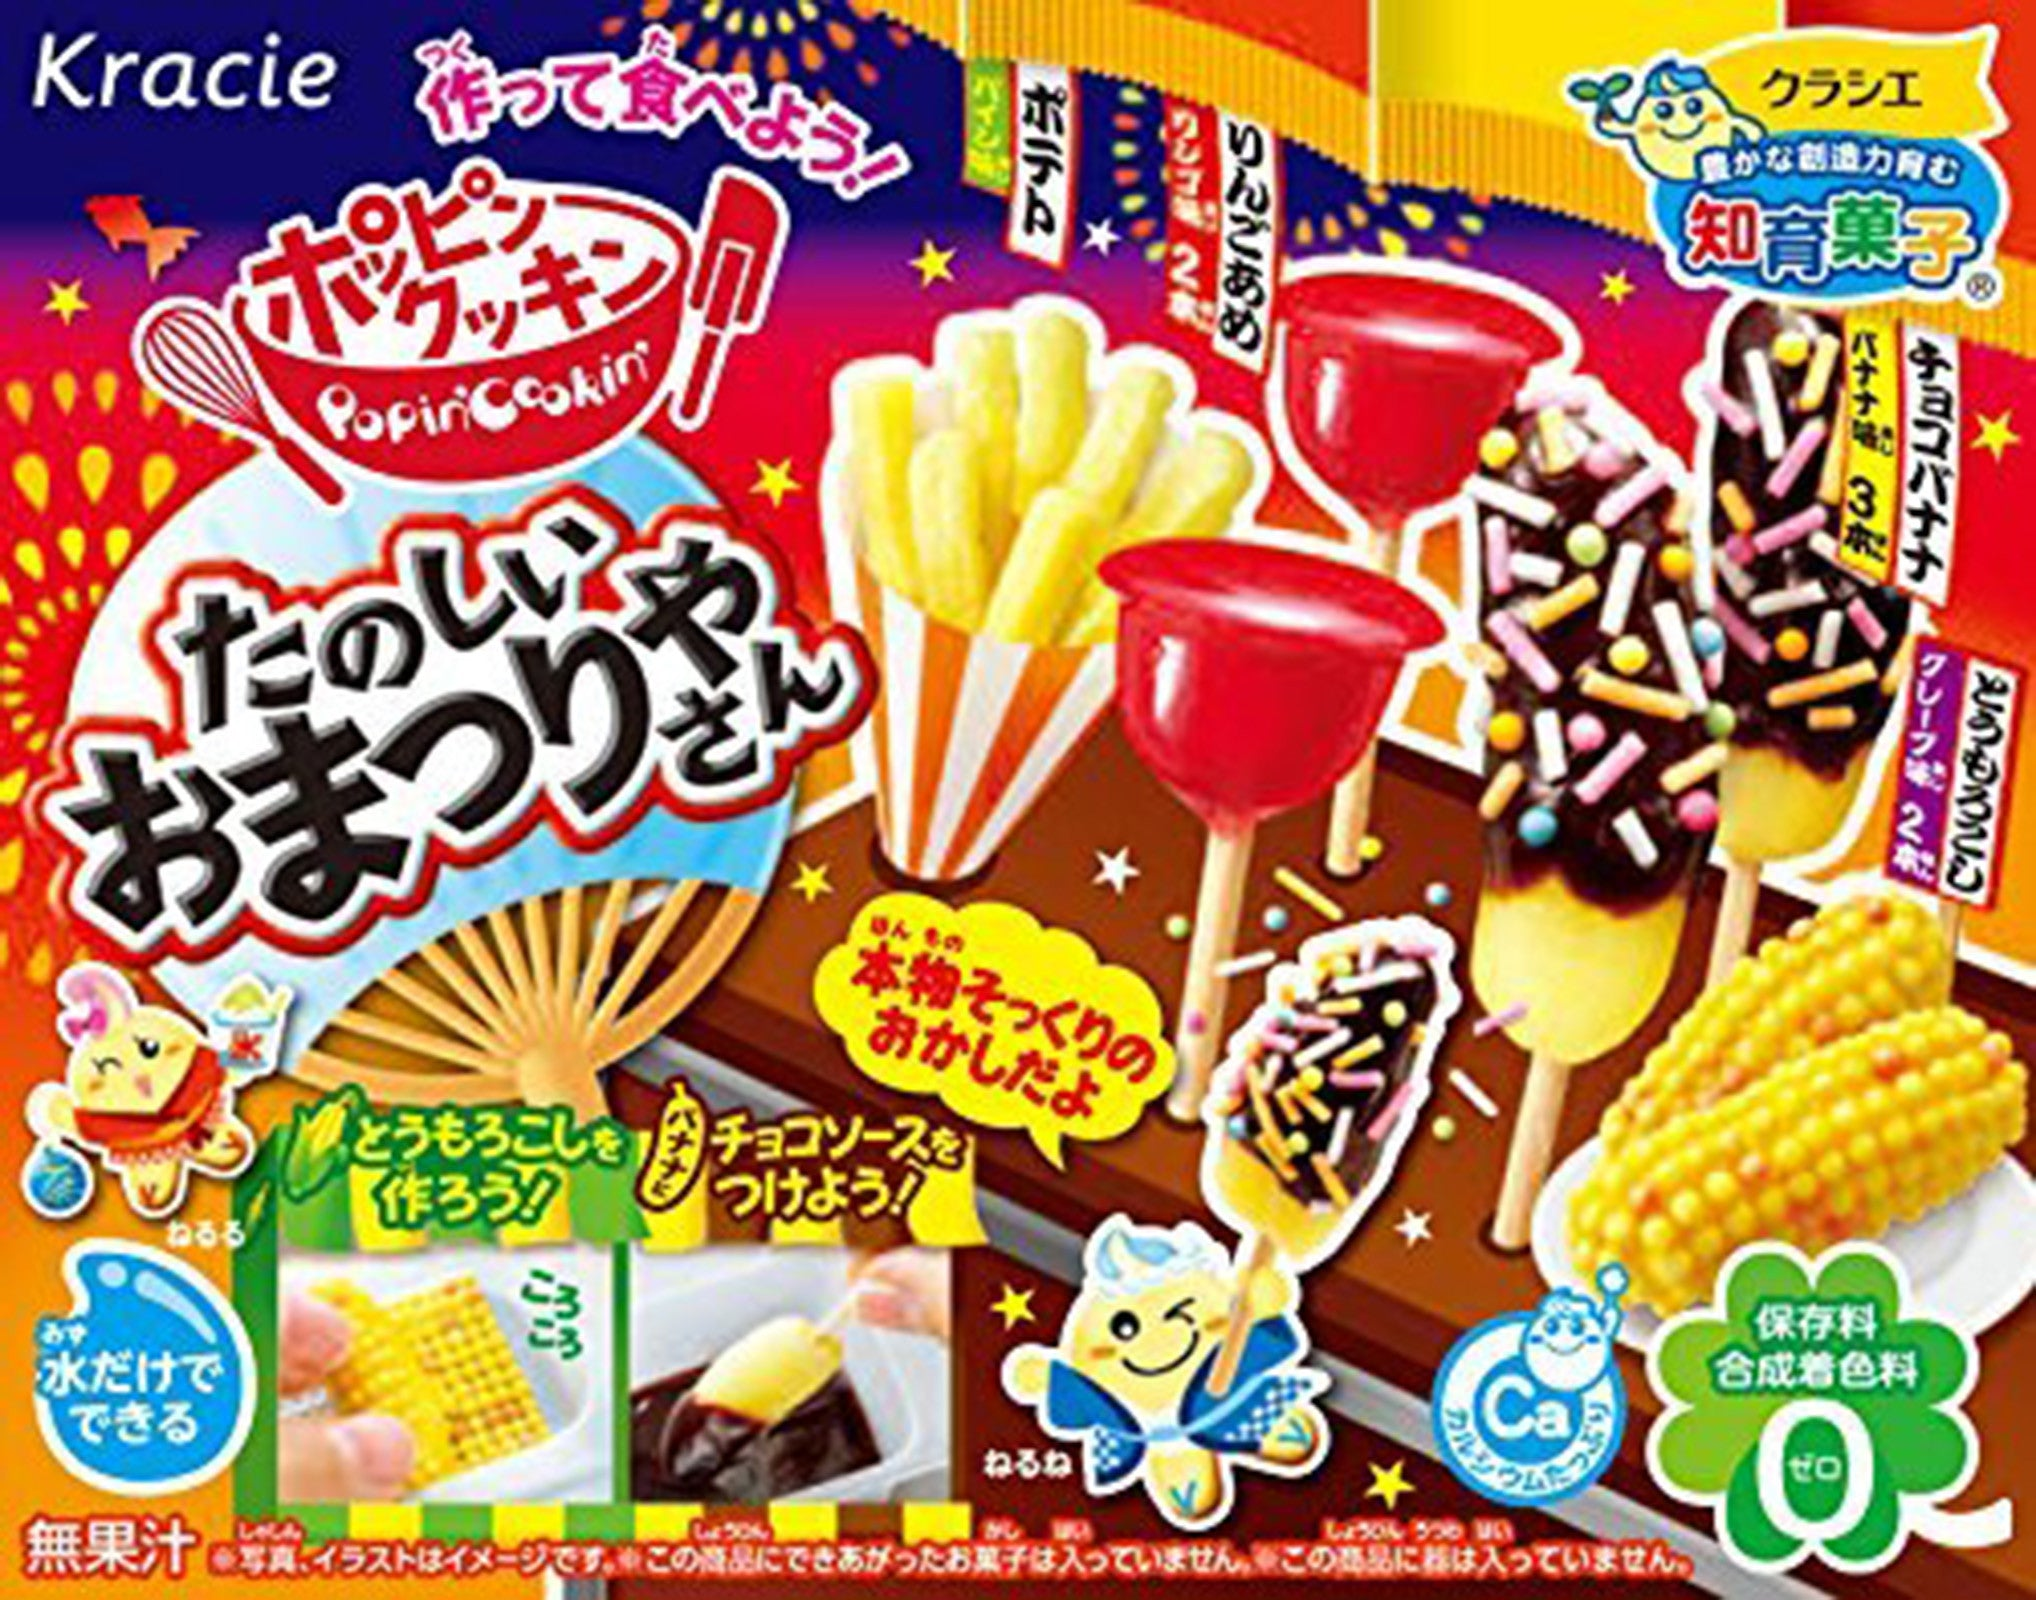 Kracie popin cookin do it yourself gummy making kits secretpantryla kracie popin cookin fun festival foods diy gummy making kit solutioingenieria Image collections